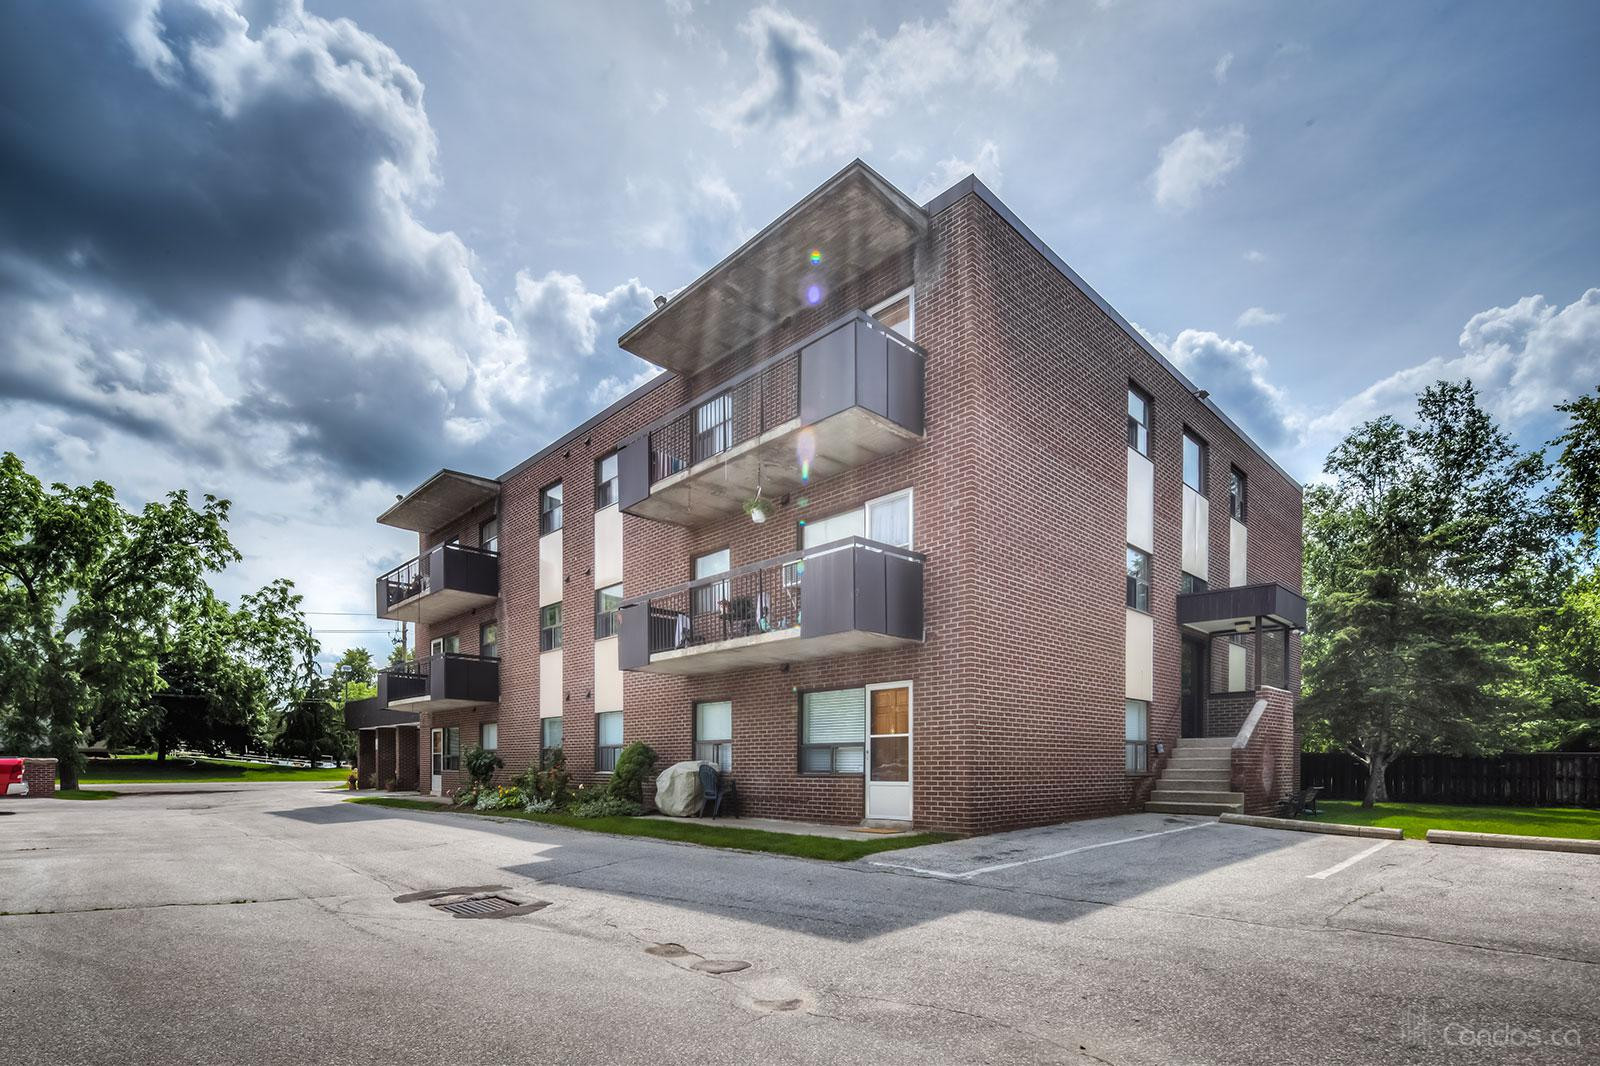 8th Street Condos at 173 Eighth St, Collingwood 1